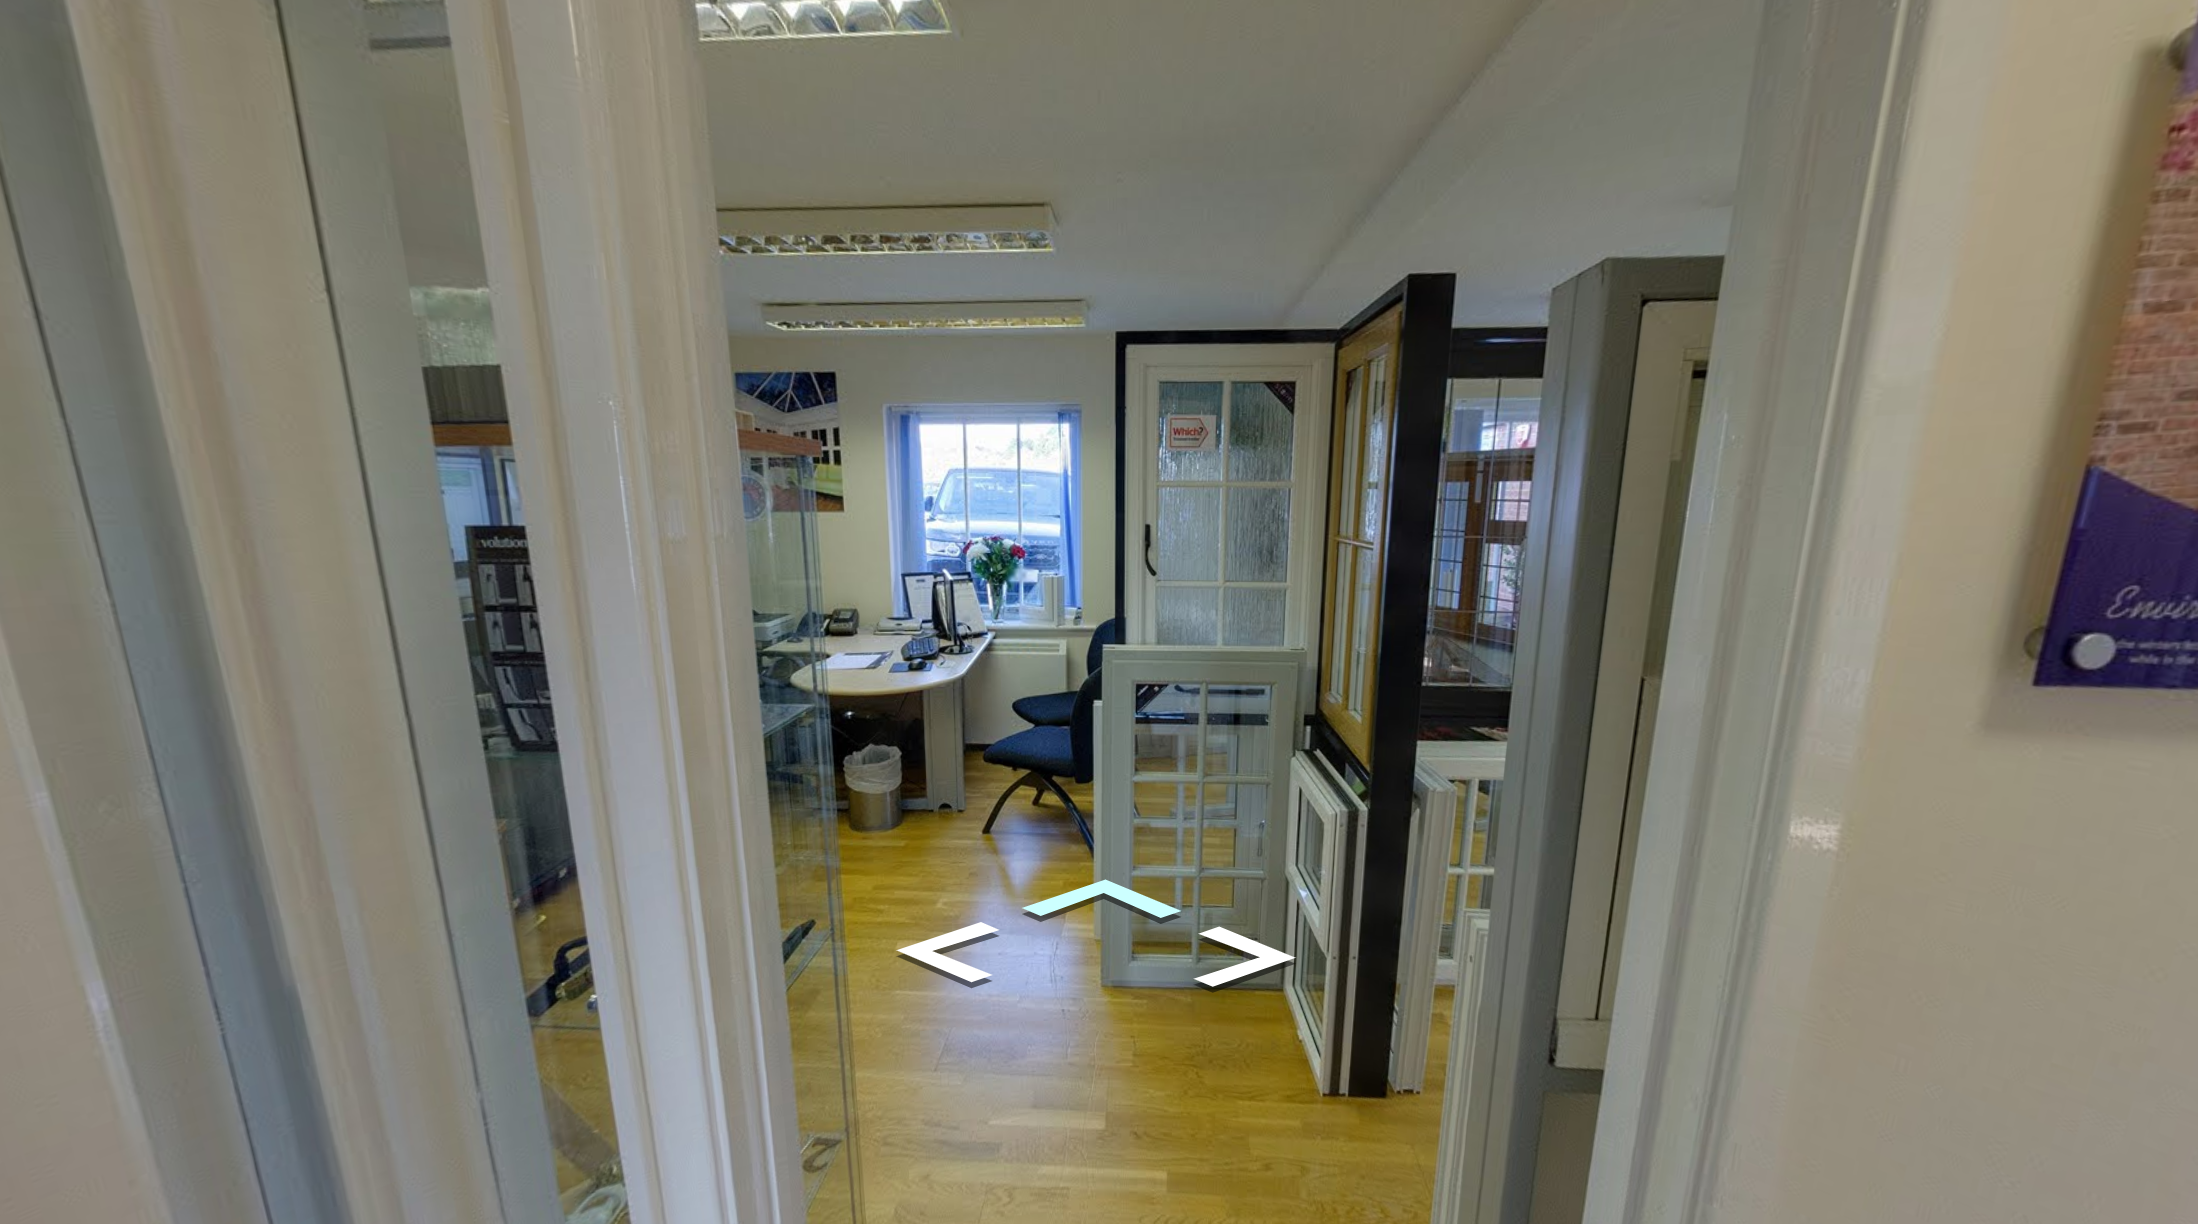 headway-windows-doors-conservatories-whitstable-canterbury-virtual-tour